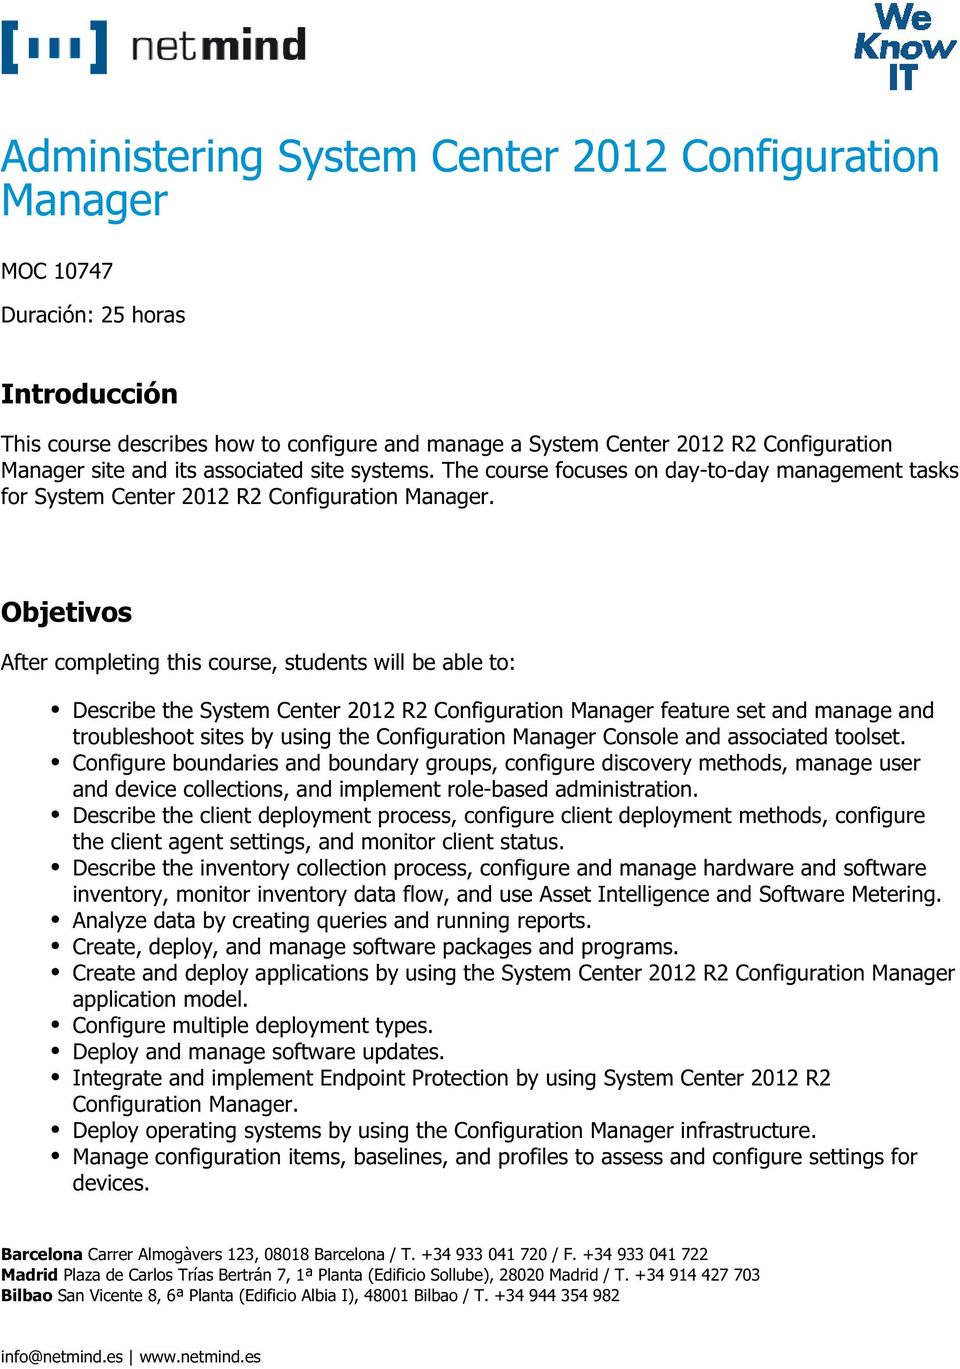 Administering System Center 2012 Configuration Manager - PDF